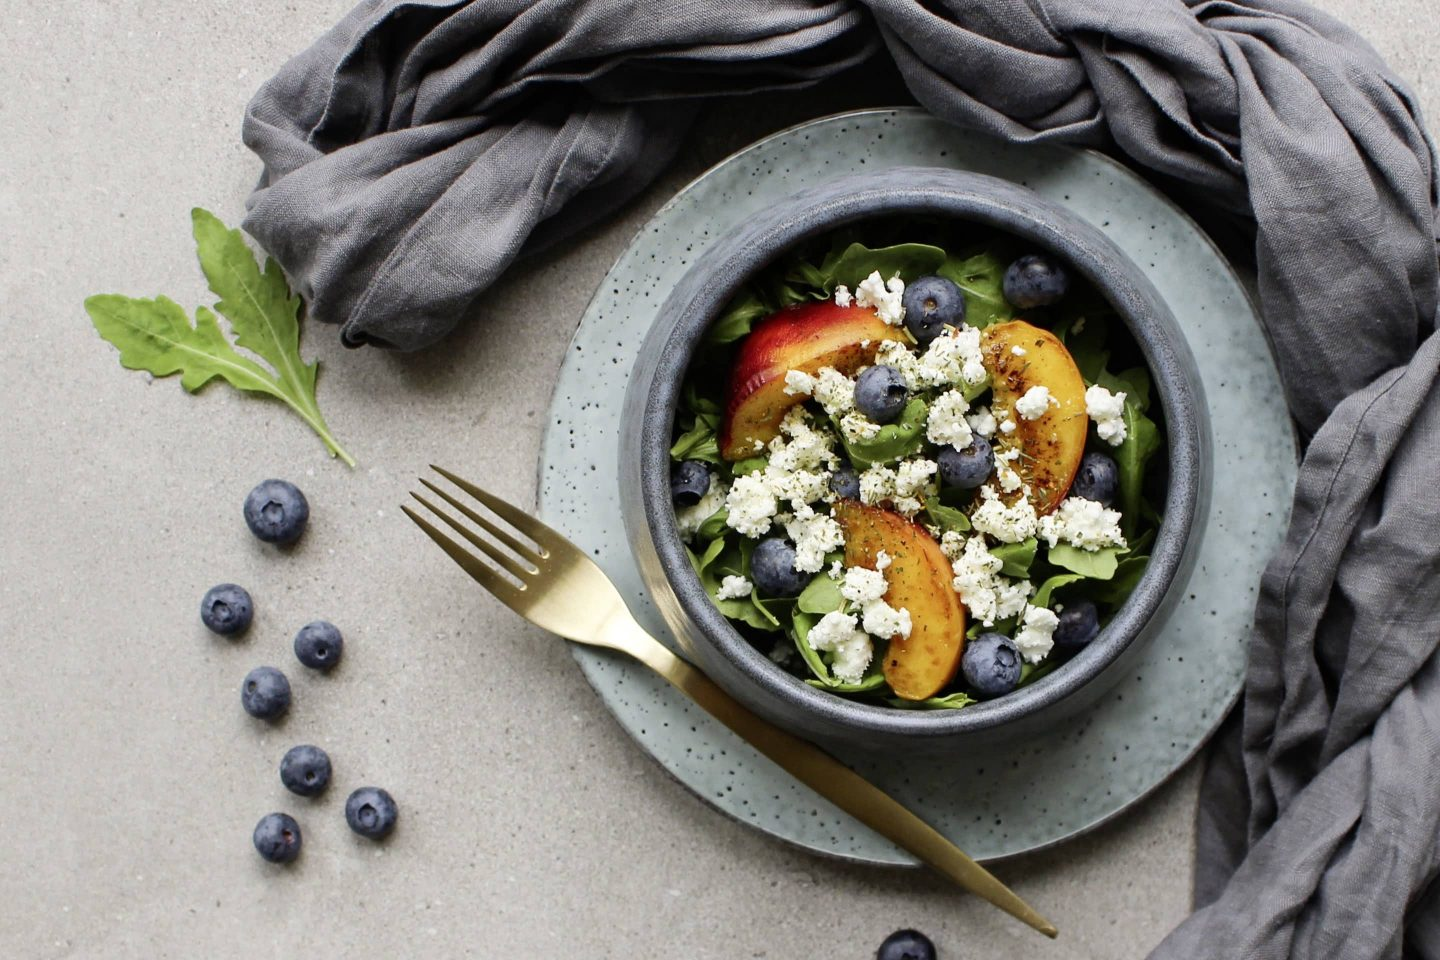 Salad with crumbled goat cheese, fresh blueberries and peach in a light blue bowl